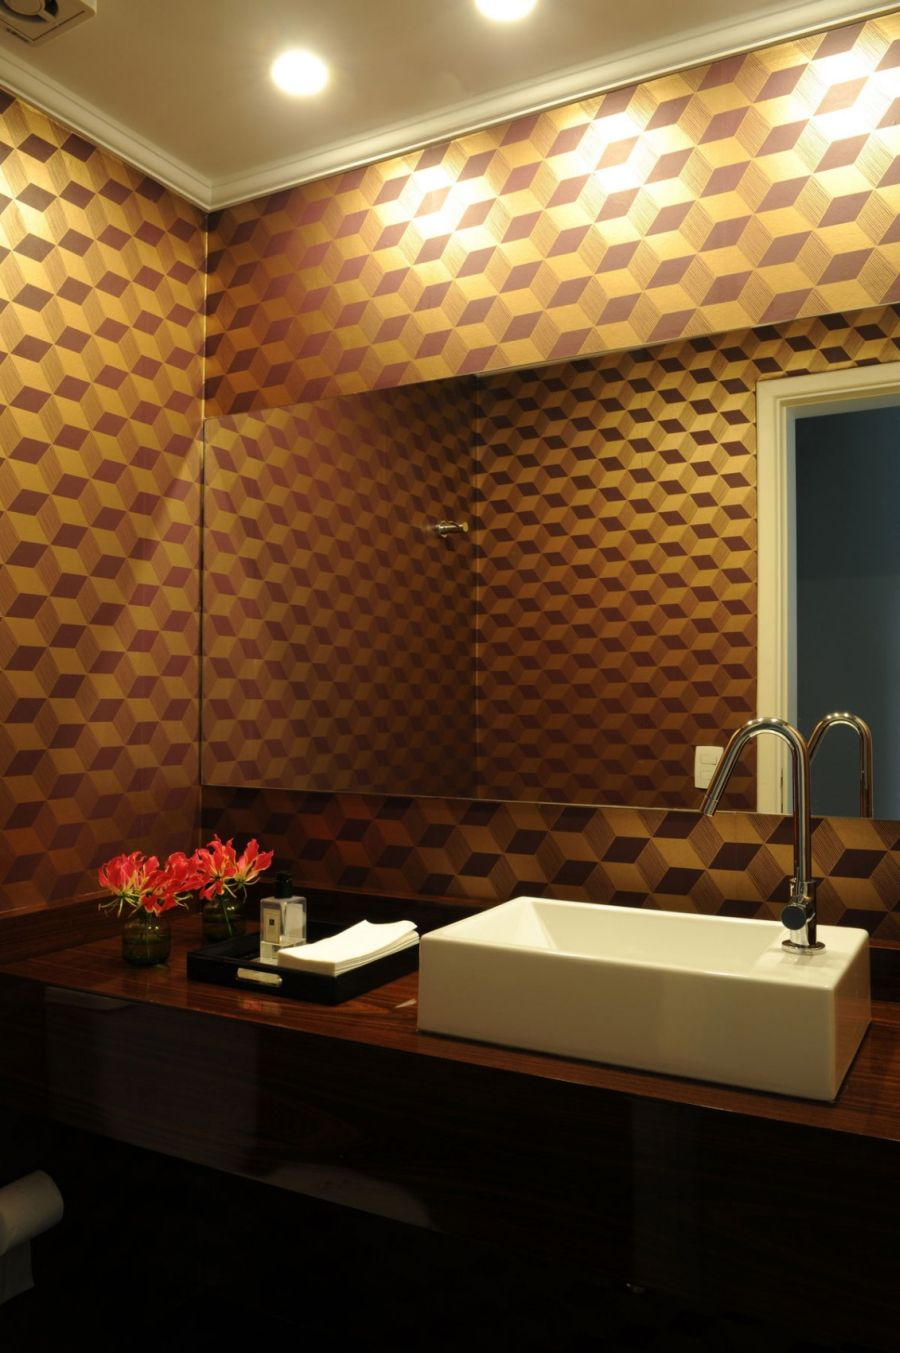 Gold accent in the bathroom